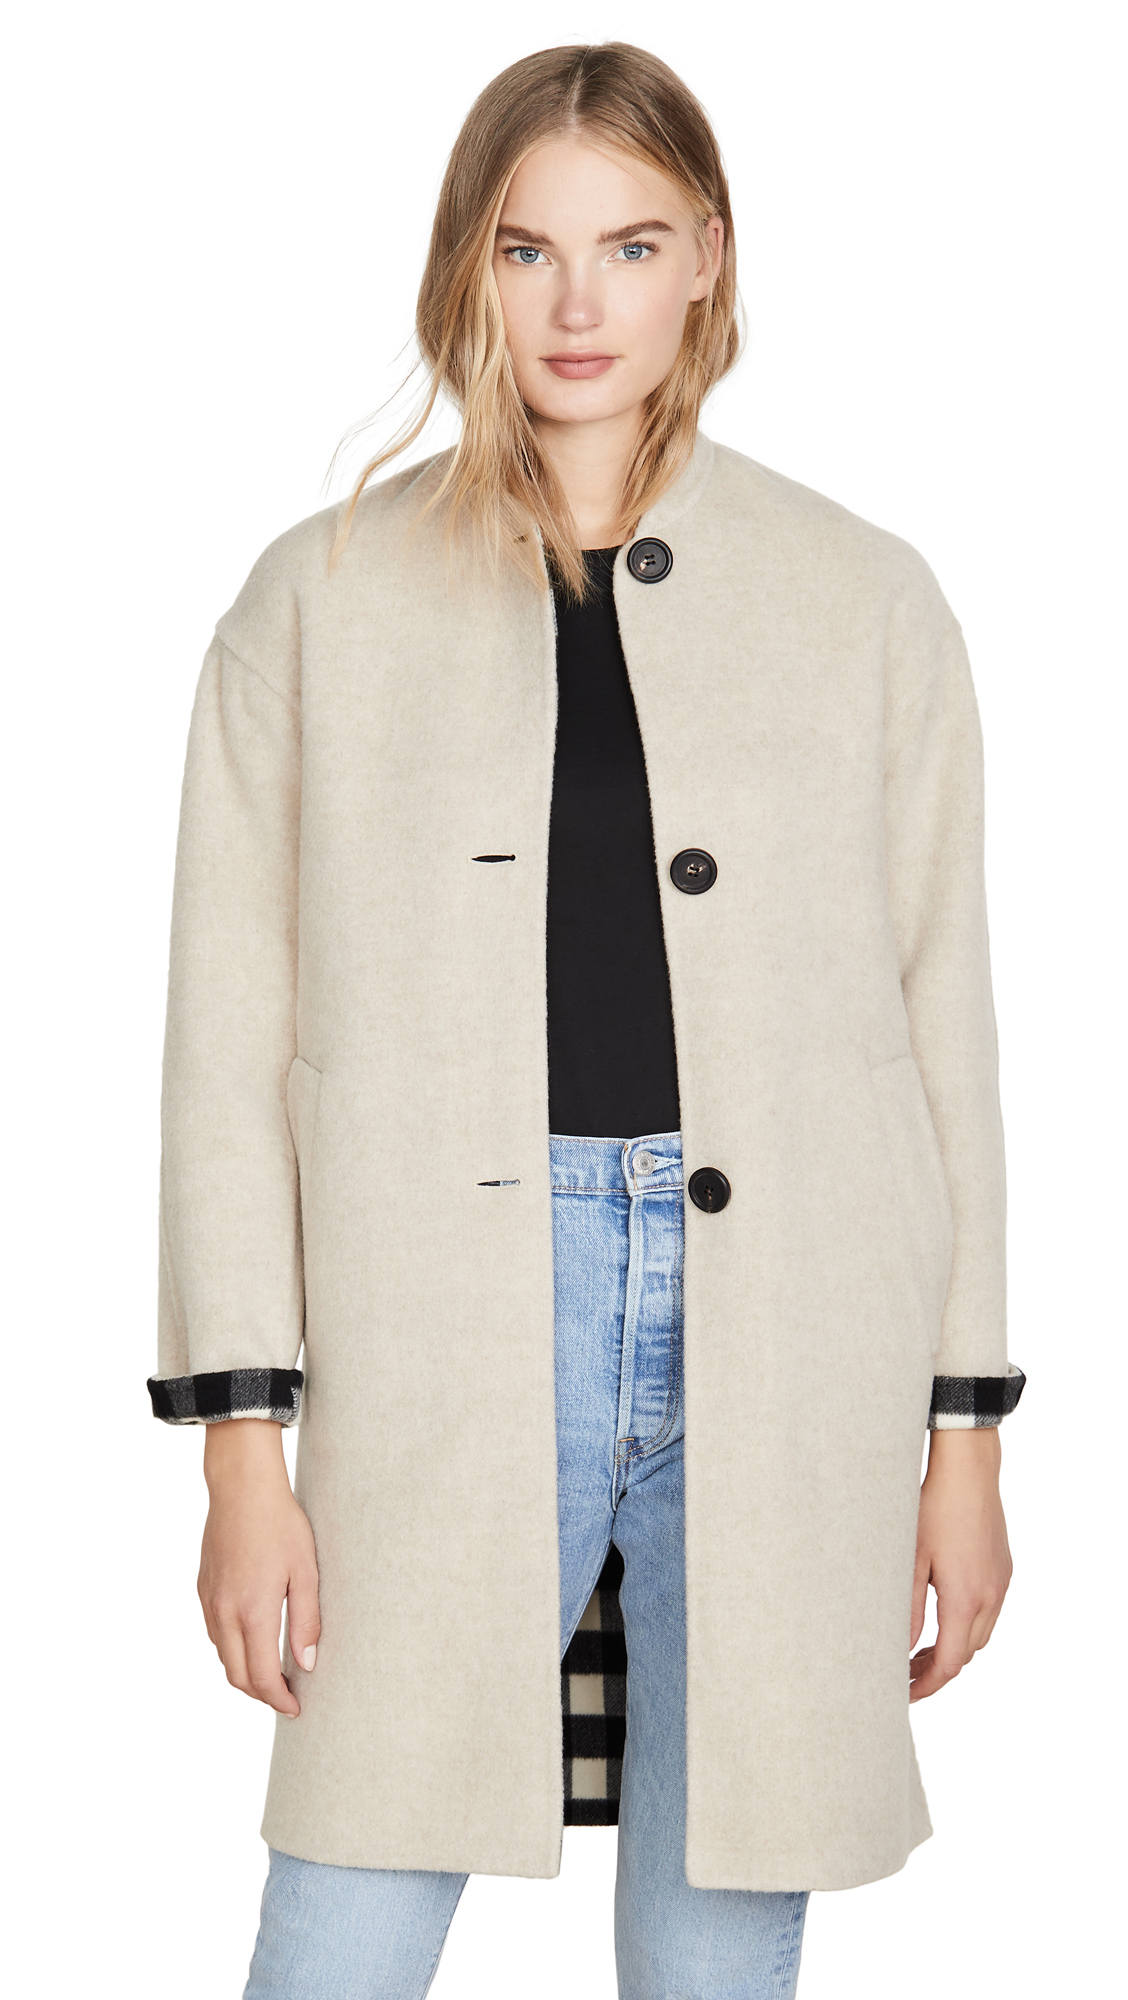 Mansur Gavriel Reversible Bicolor Wool Stand Collar Coat In Beige/checker